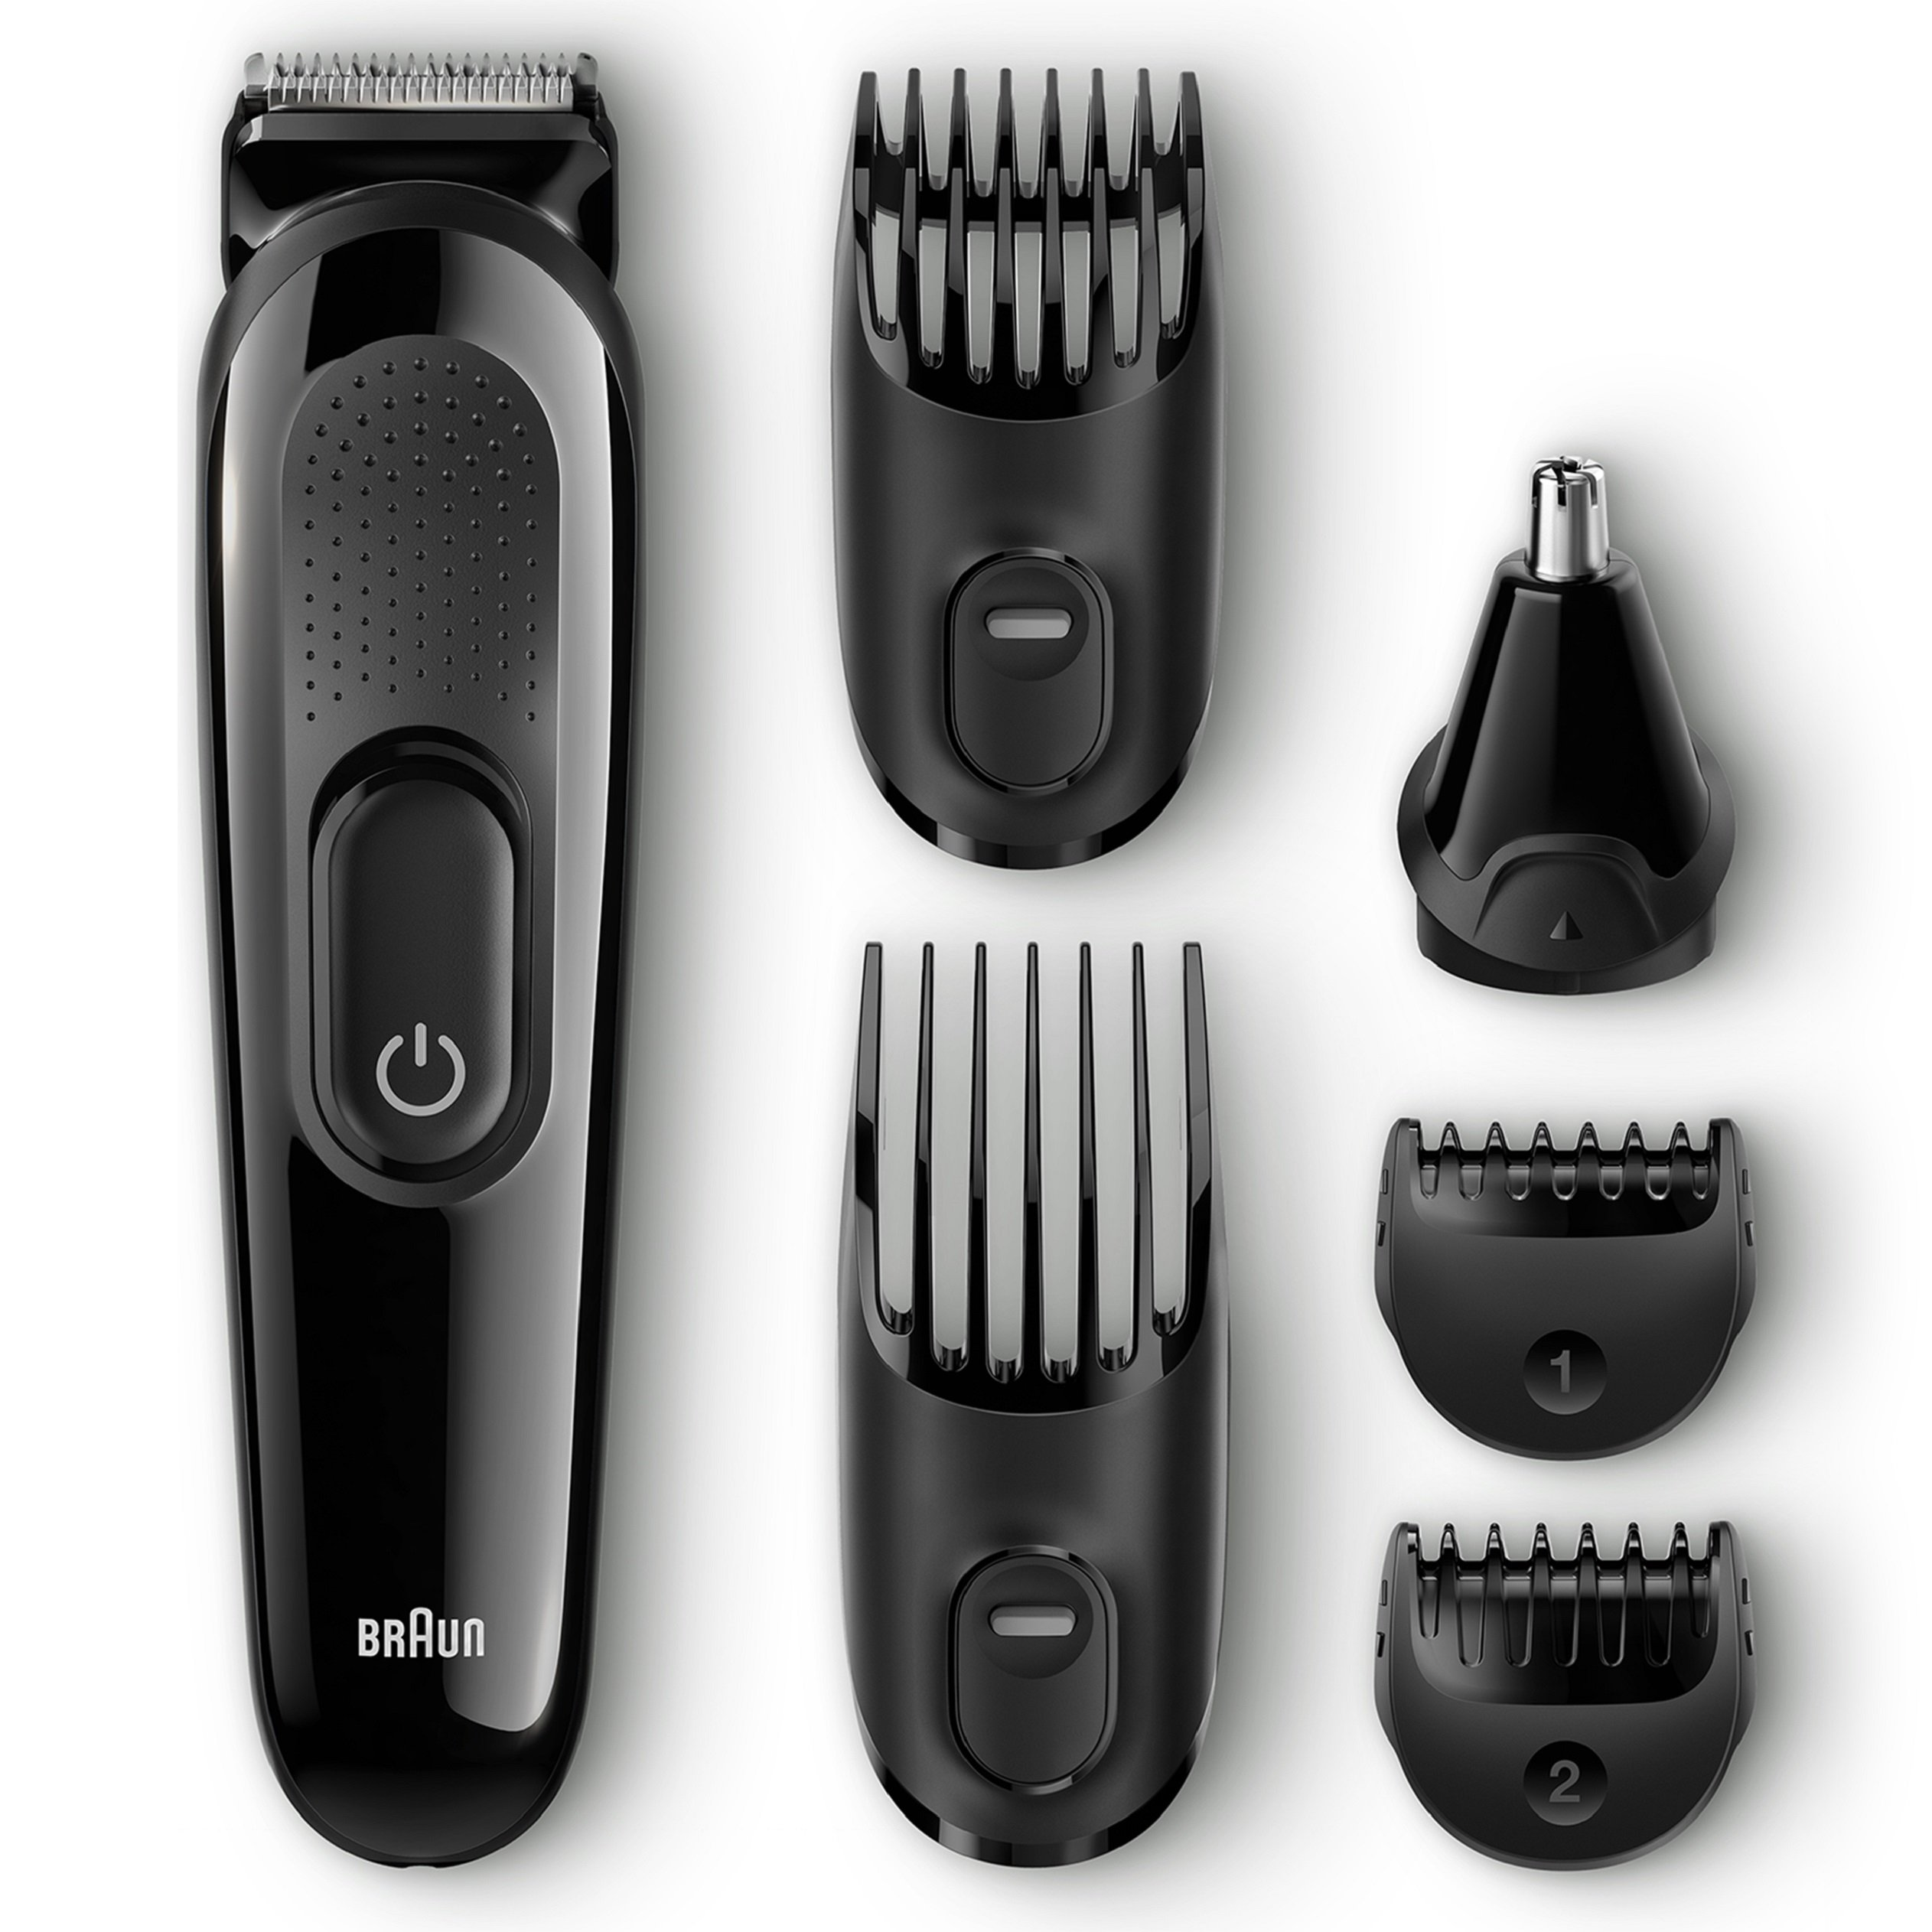 Braun Multi Grooming Kit MGK3020 6-in-1 Hair / Beard Trimmer for Men, Face and Head Trimming